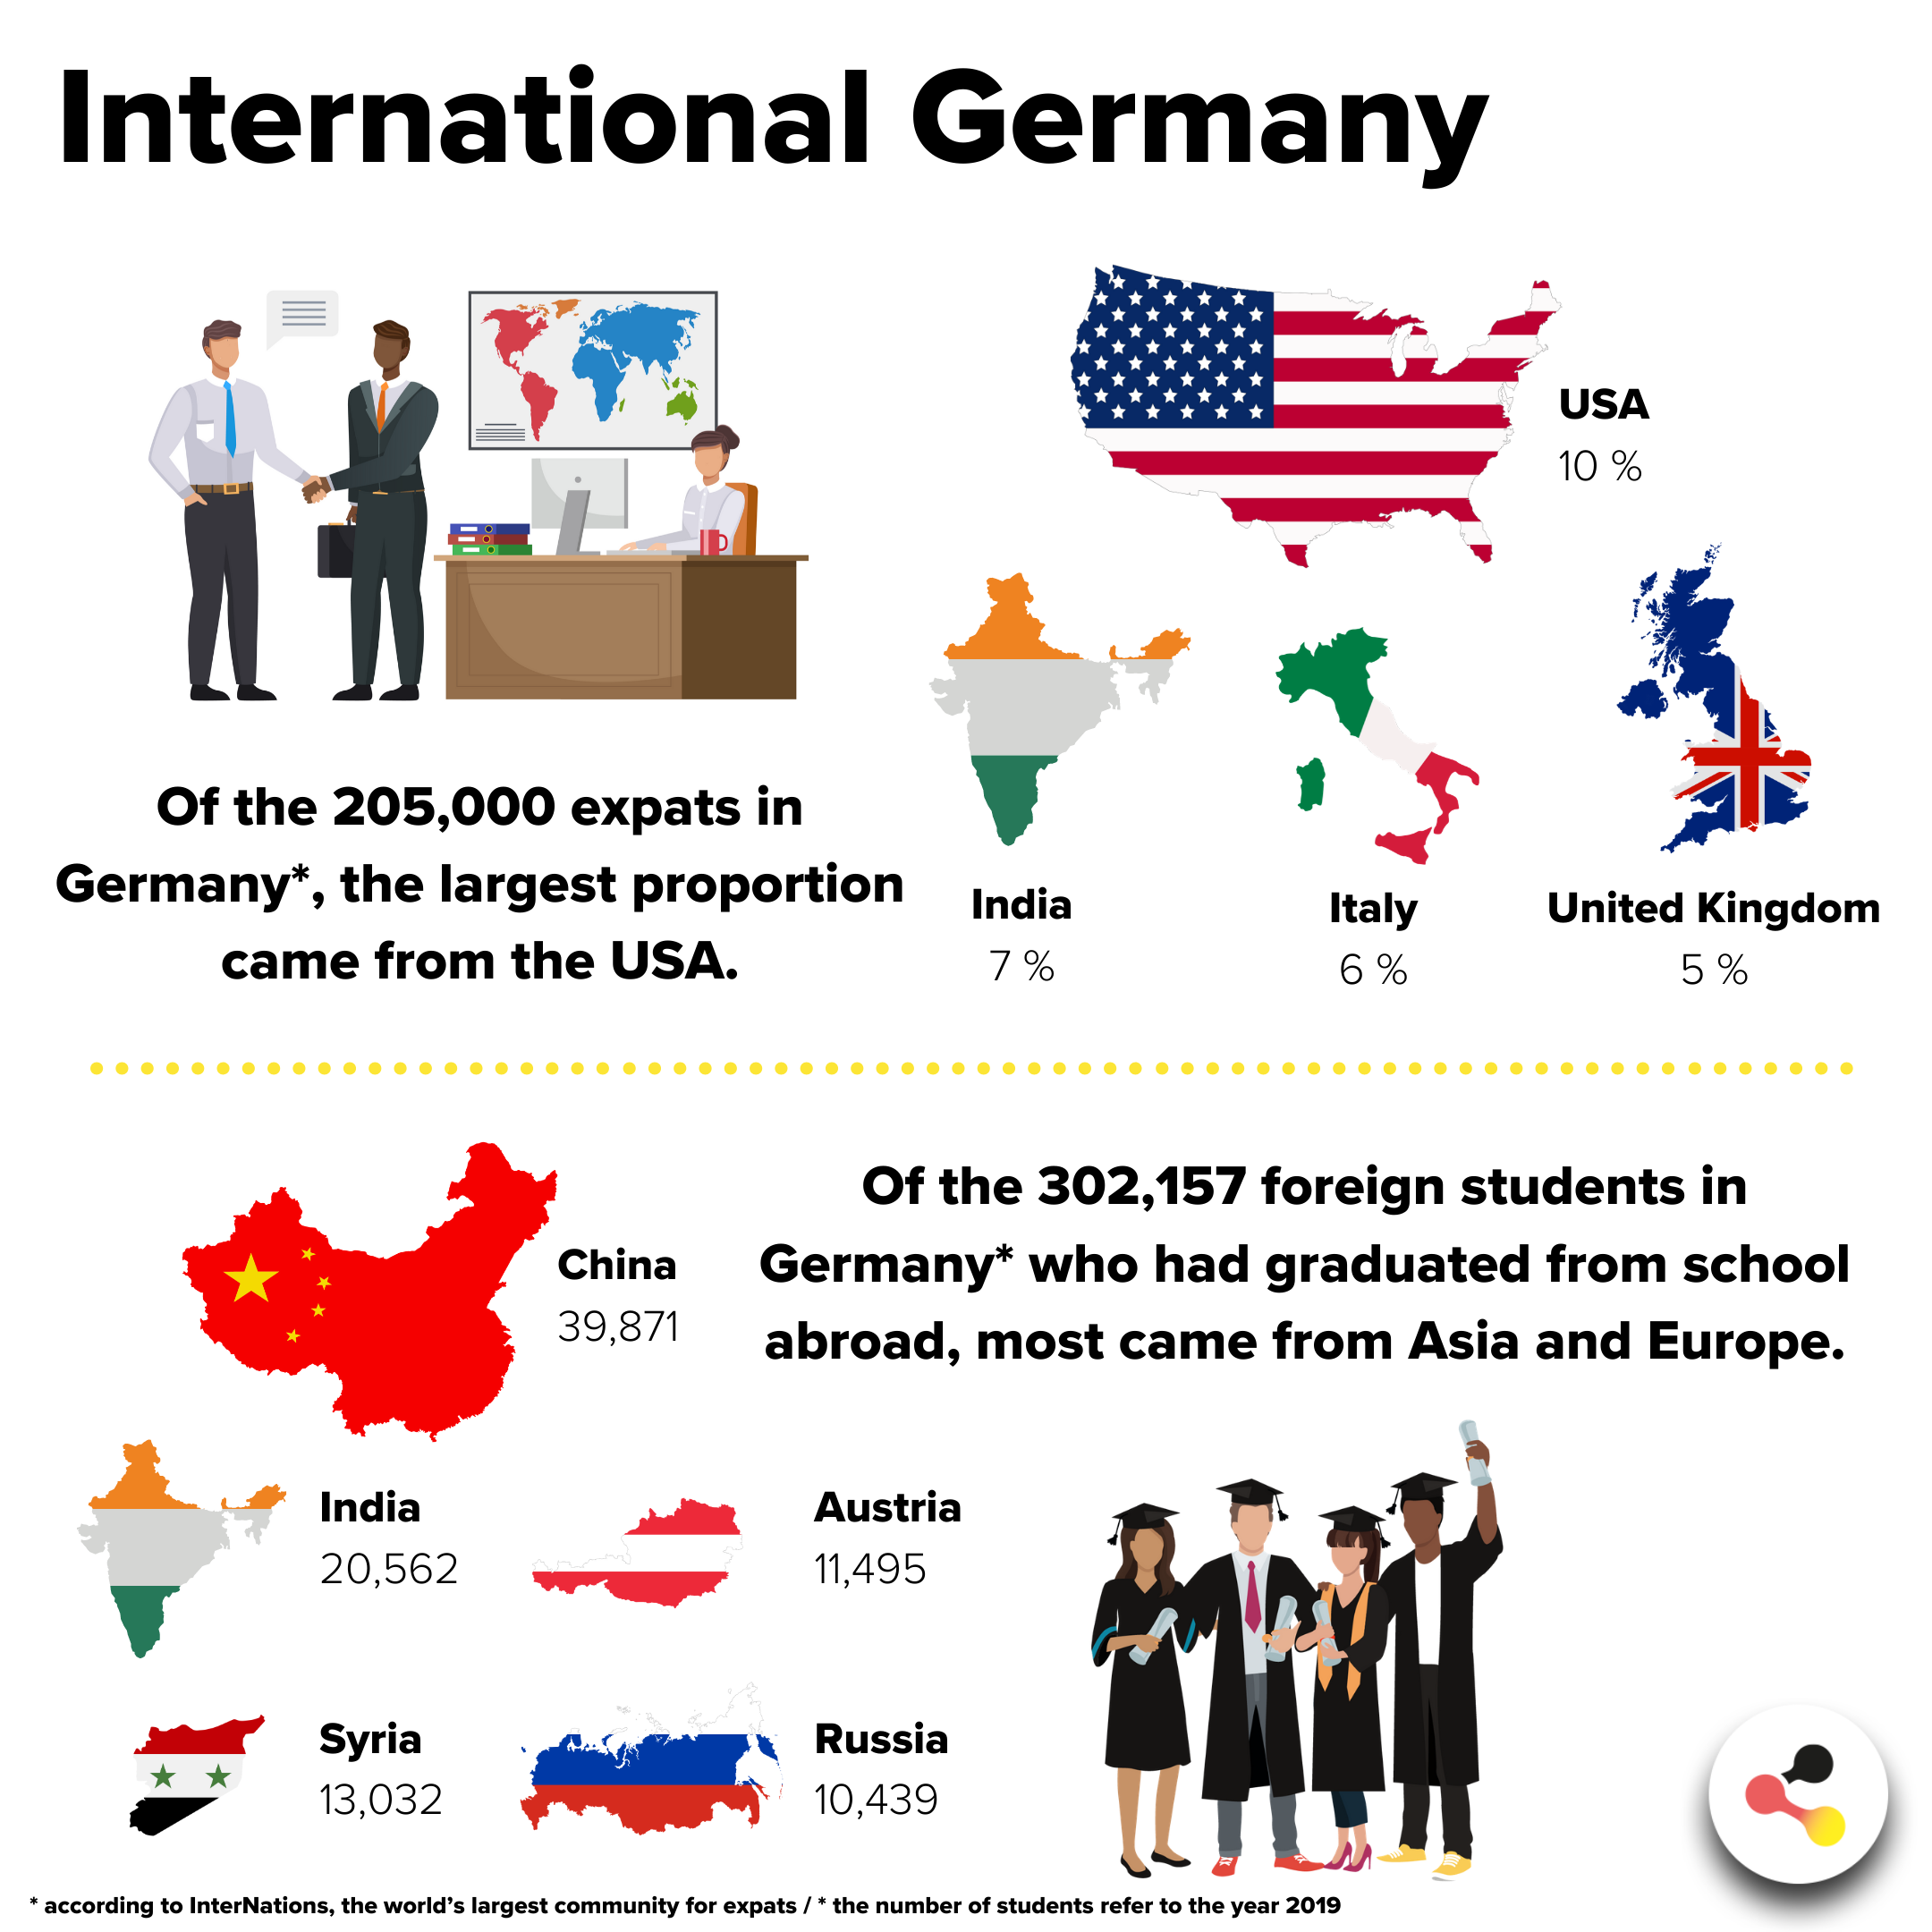 International Germany: 205.000 expats and 302.157 foreign students in Germany.